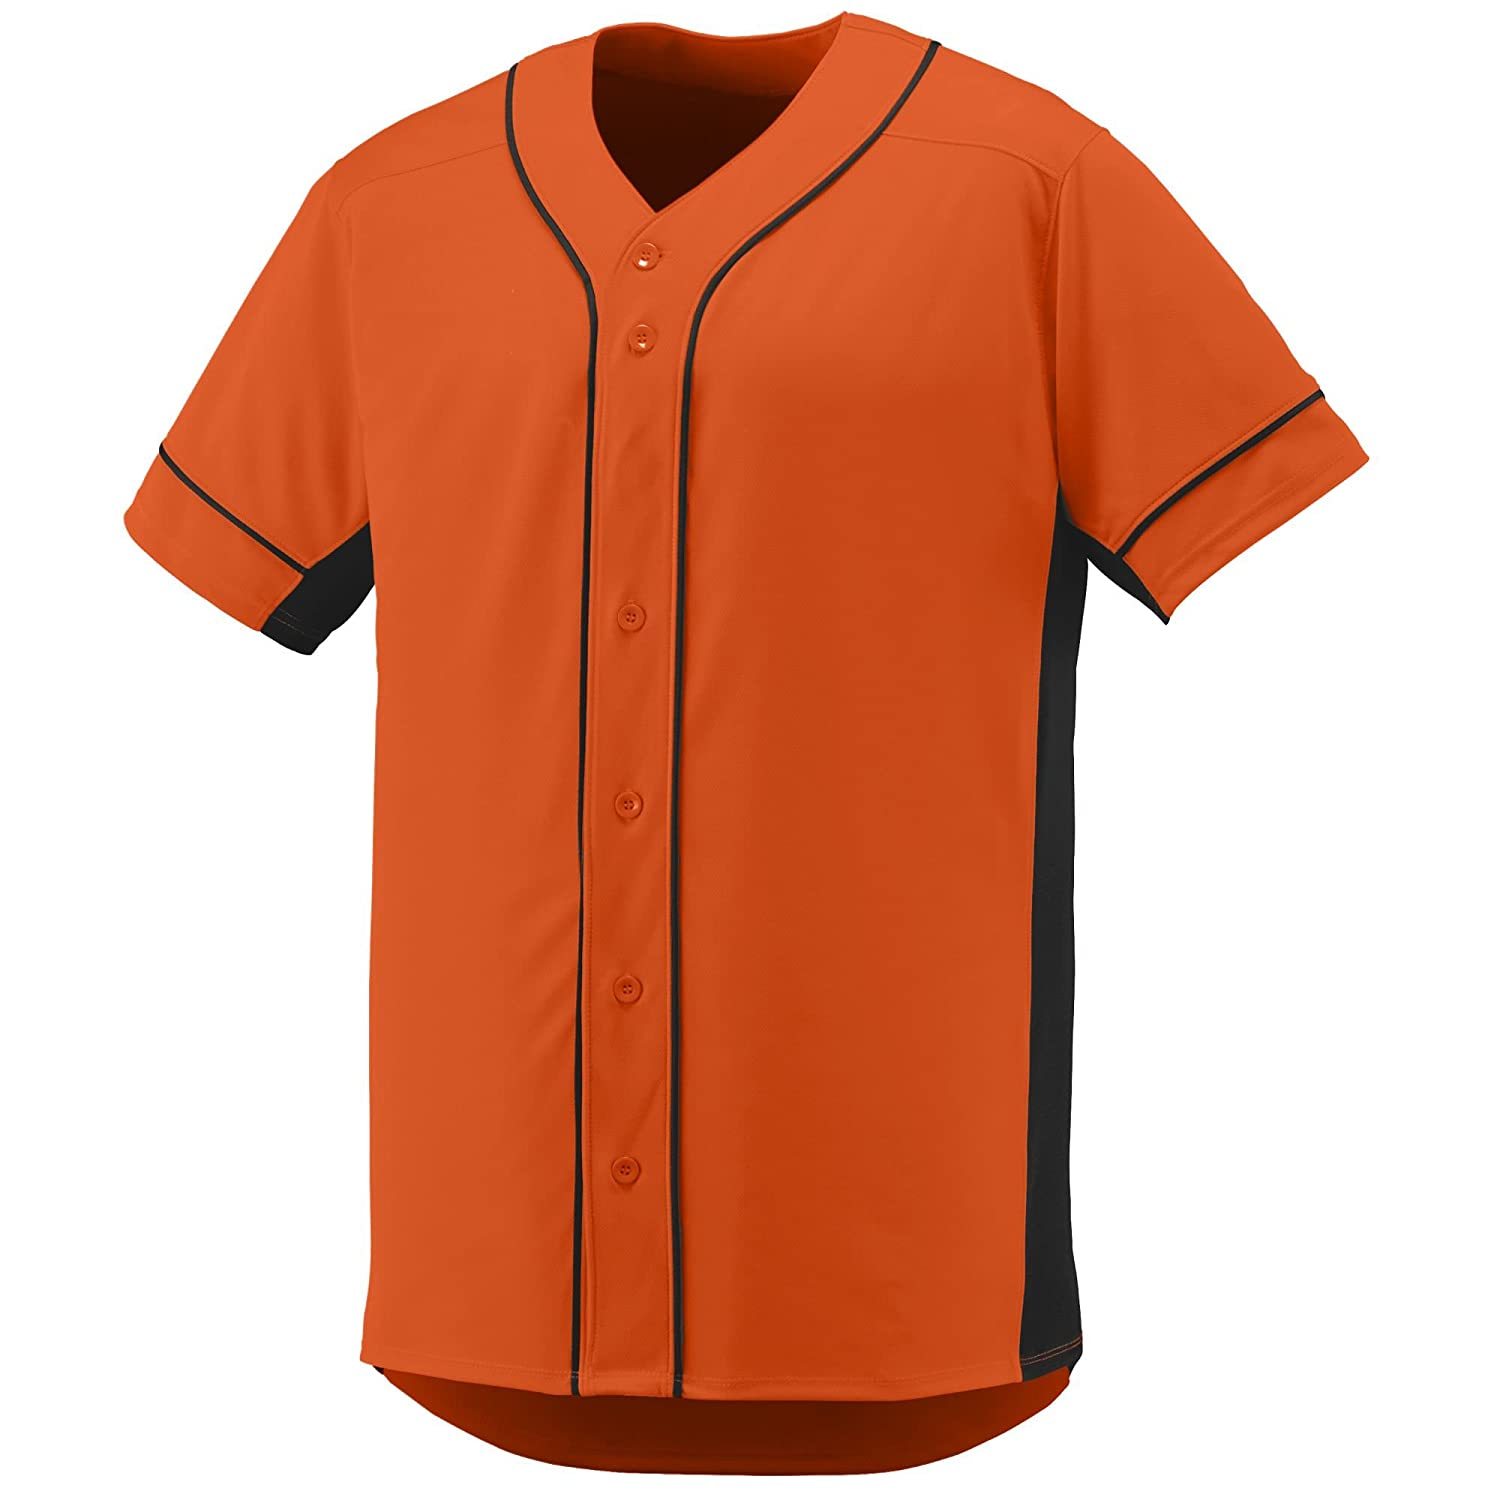 Augusta Sportswear Boys' Slugger Baseball Jersey L Orange/Black